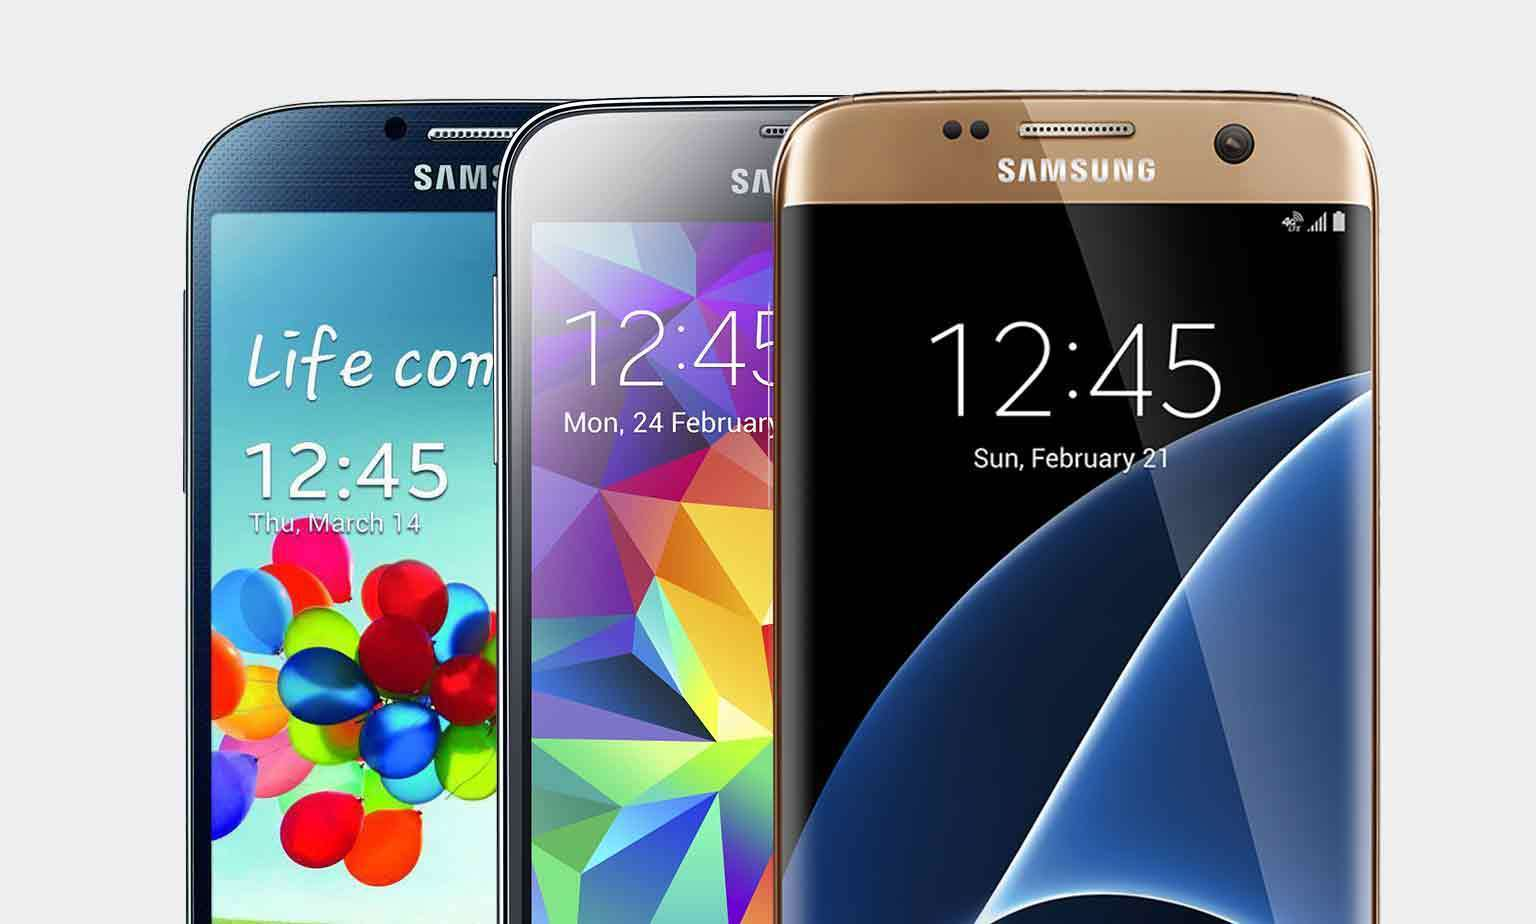 Upgrade for Less - Samsung Phones from £100